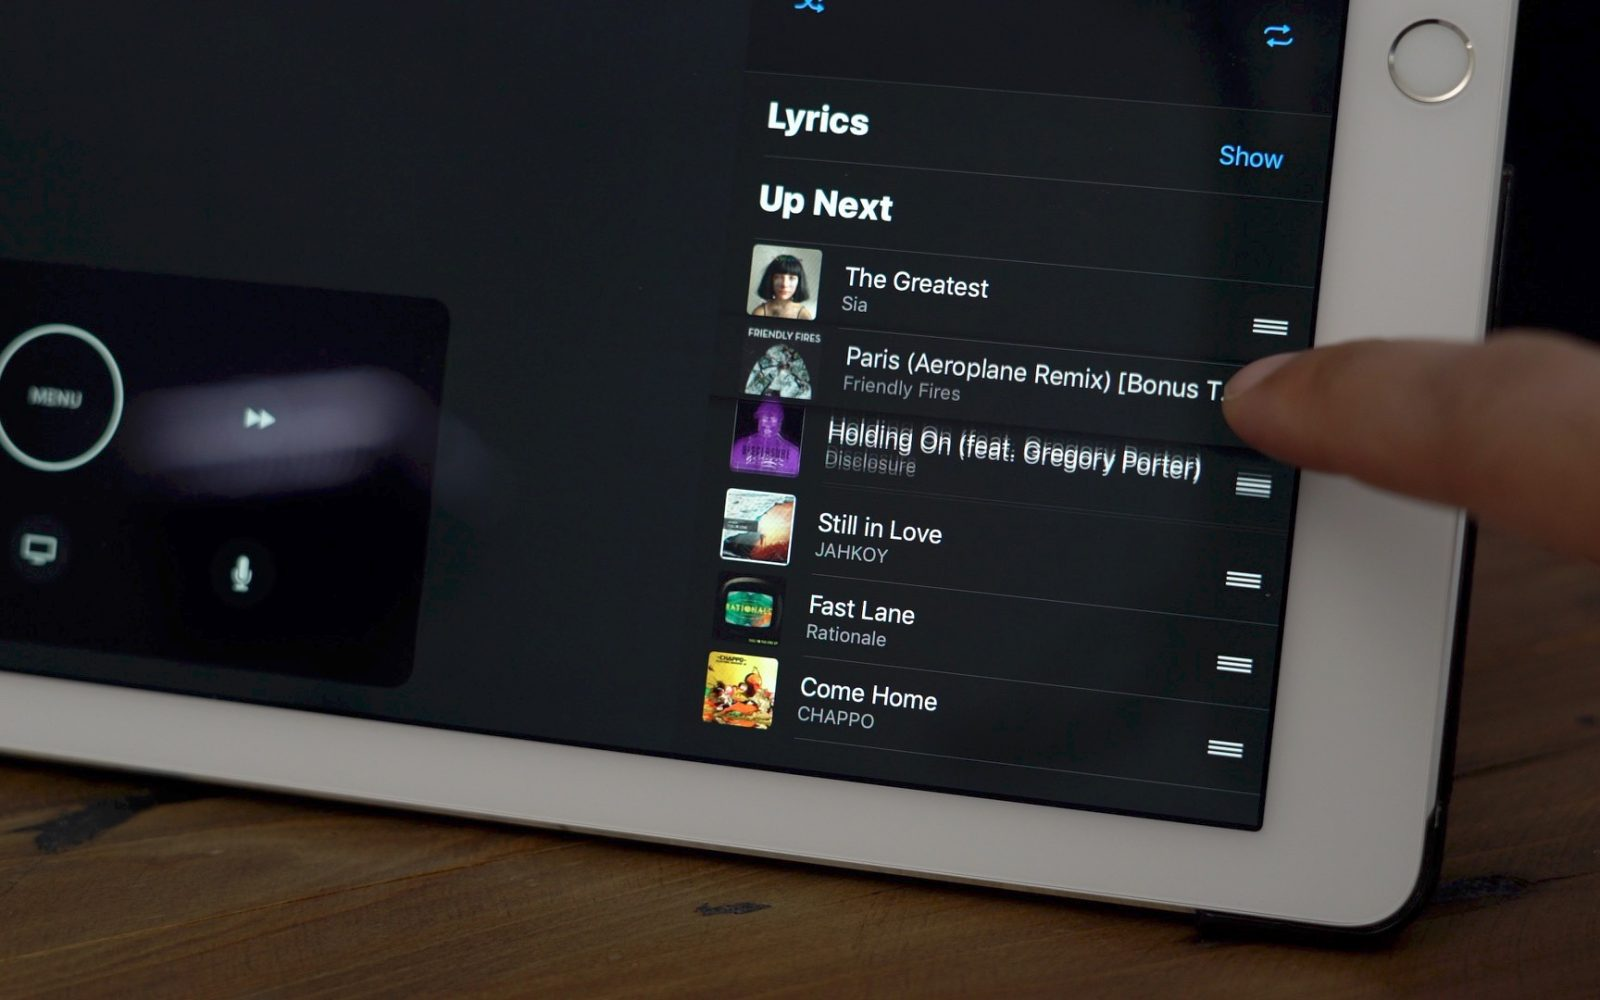 Hands-on with the updated Apple TV Remote app for iPhone and